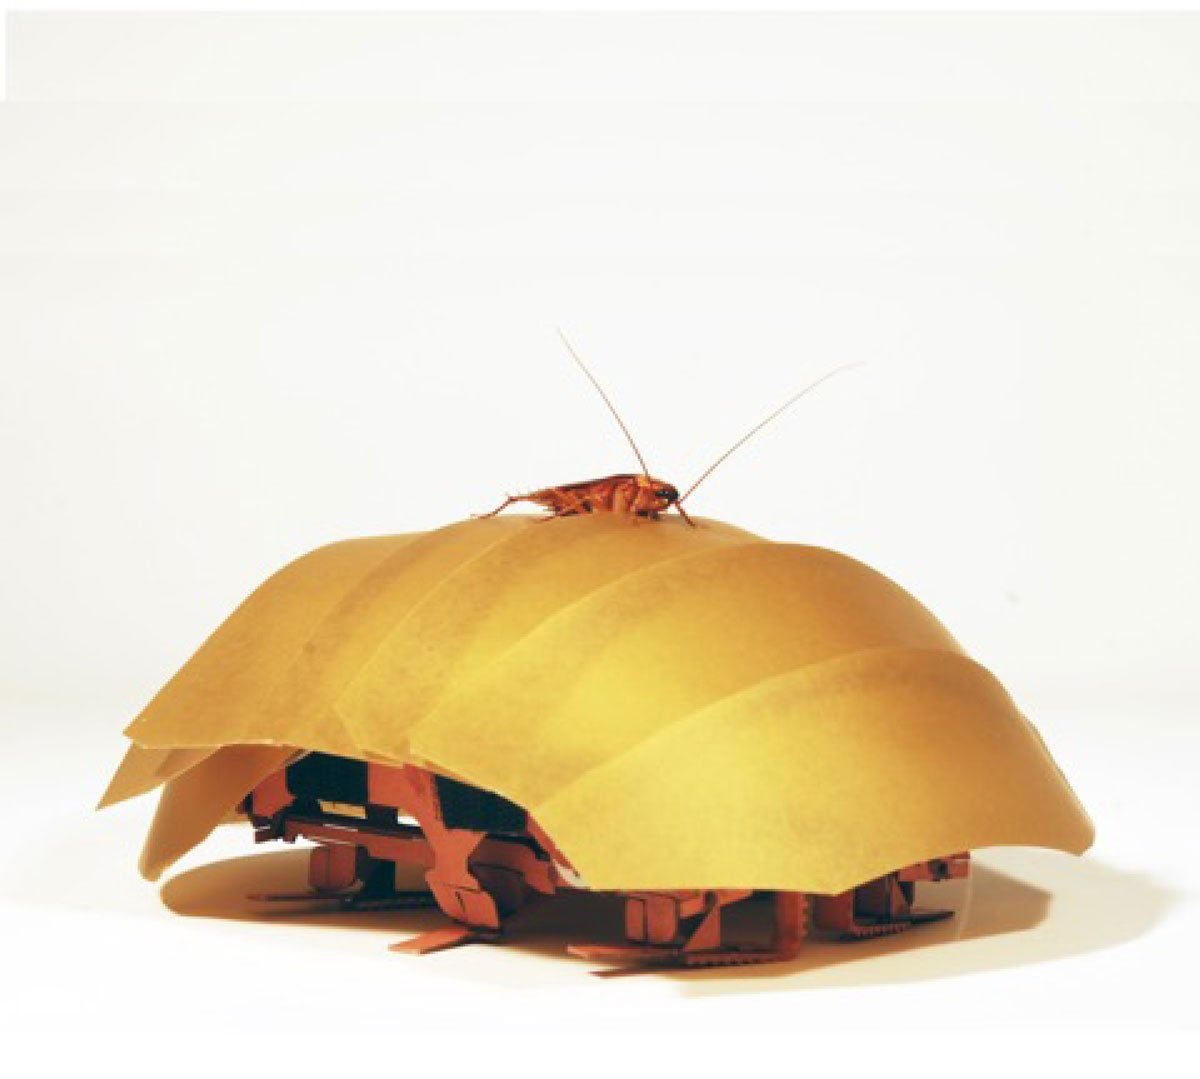 This Roach-Inspired Robot Crawls Even When Squished